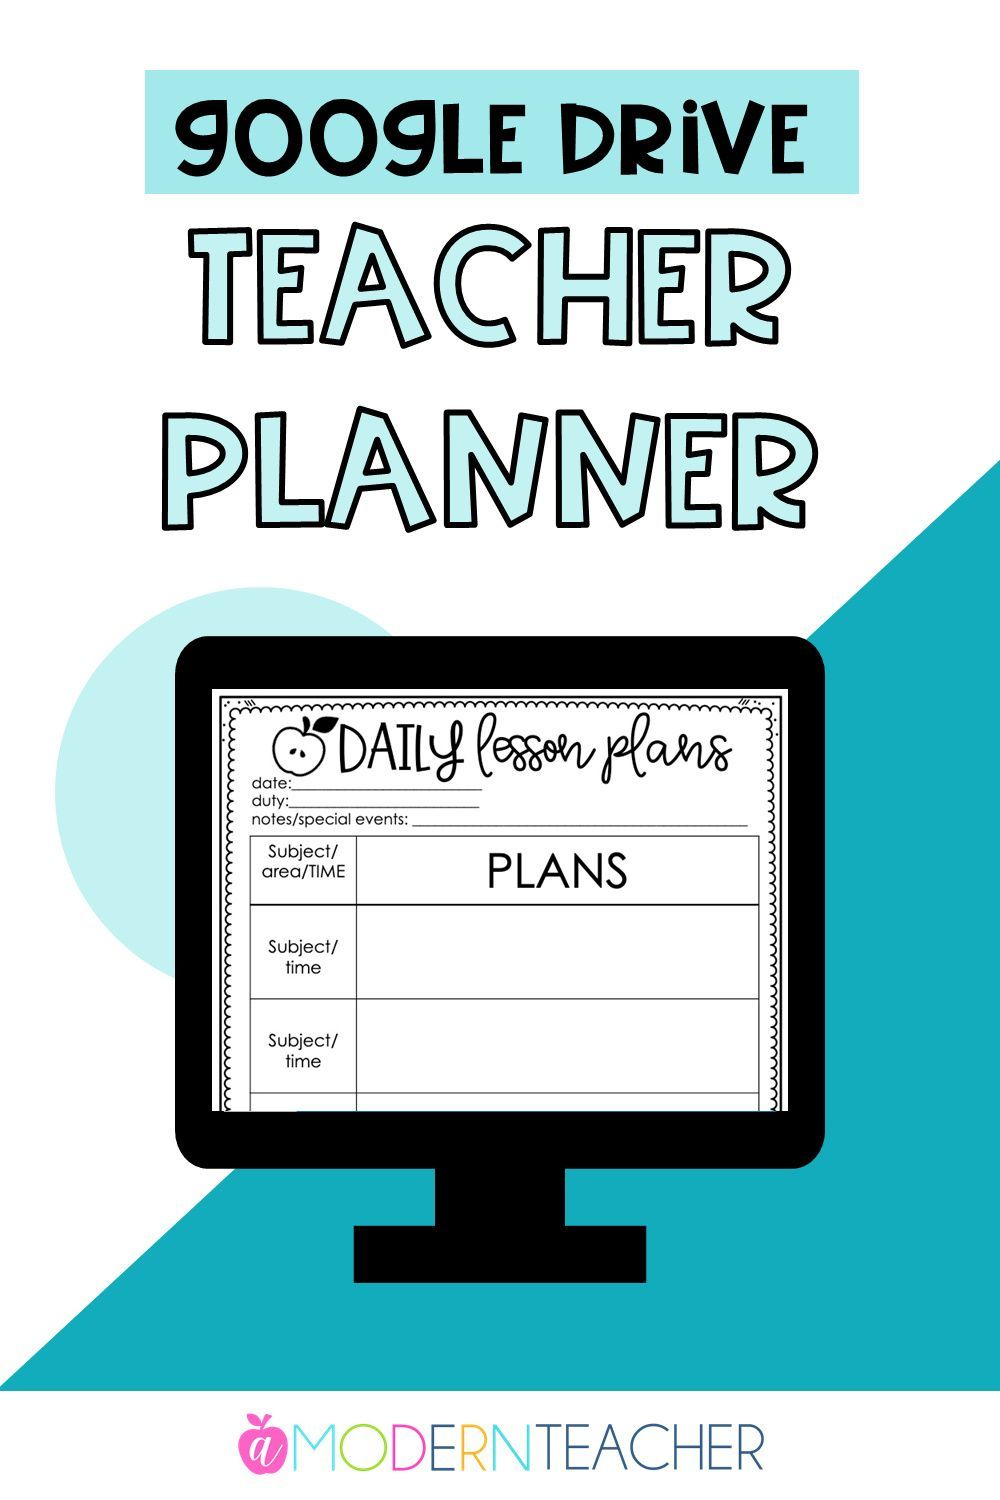 Google Drive Teacher Planner in 2020 Guided math lessons